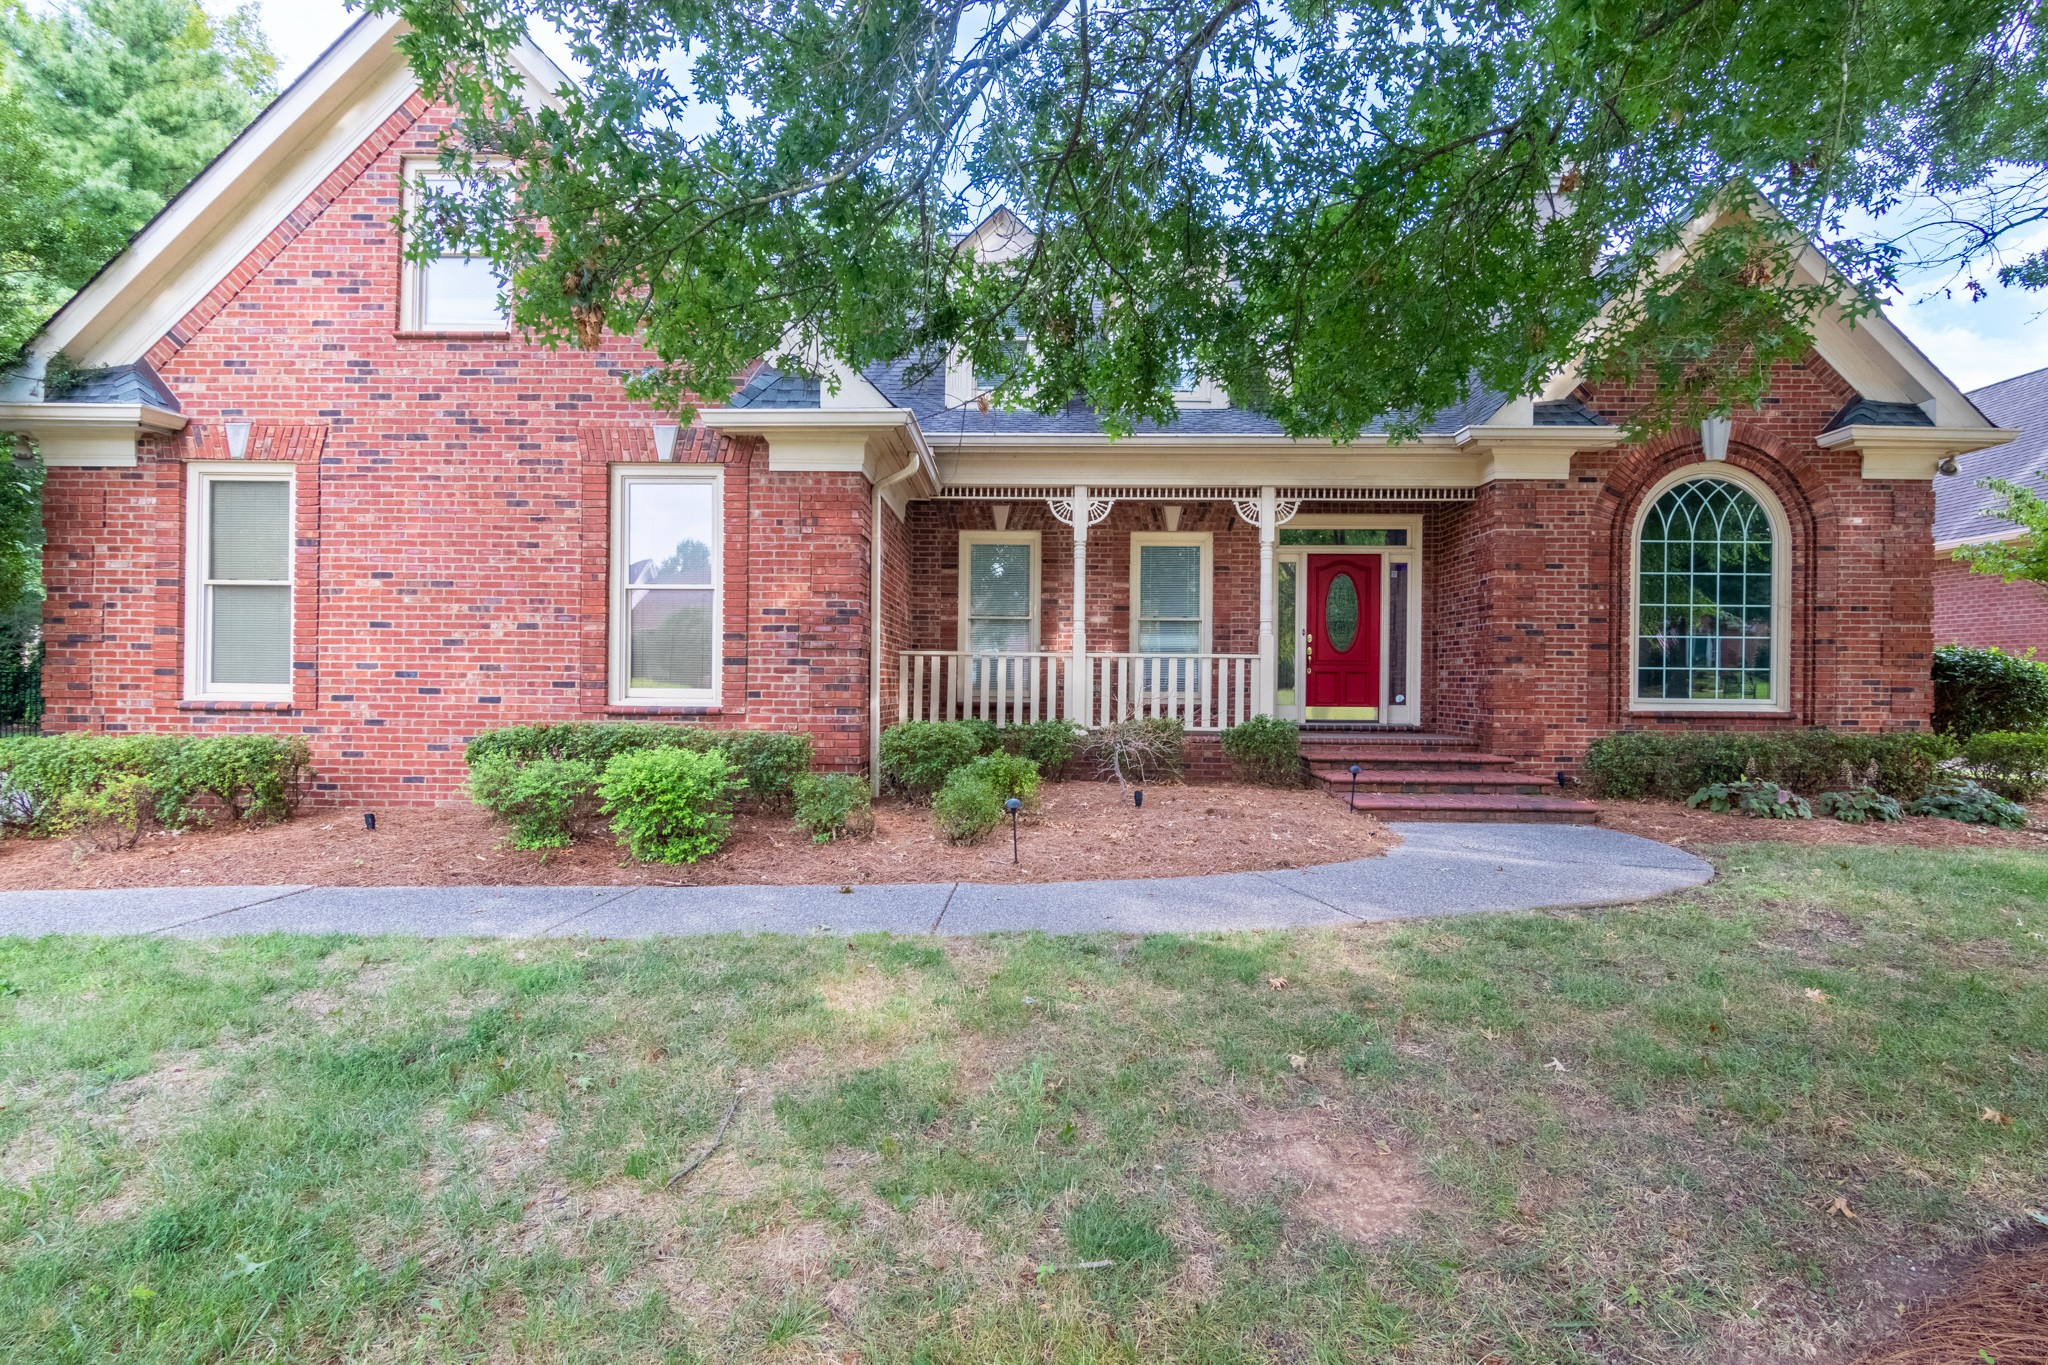 4032 Brandywine Pointe Blvd Property Photo - Old Hickory, TN real estate listing